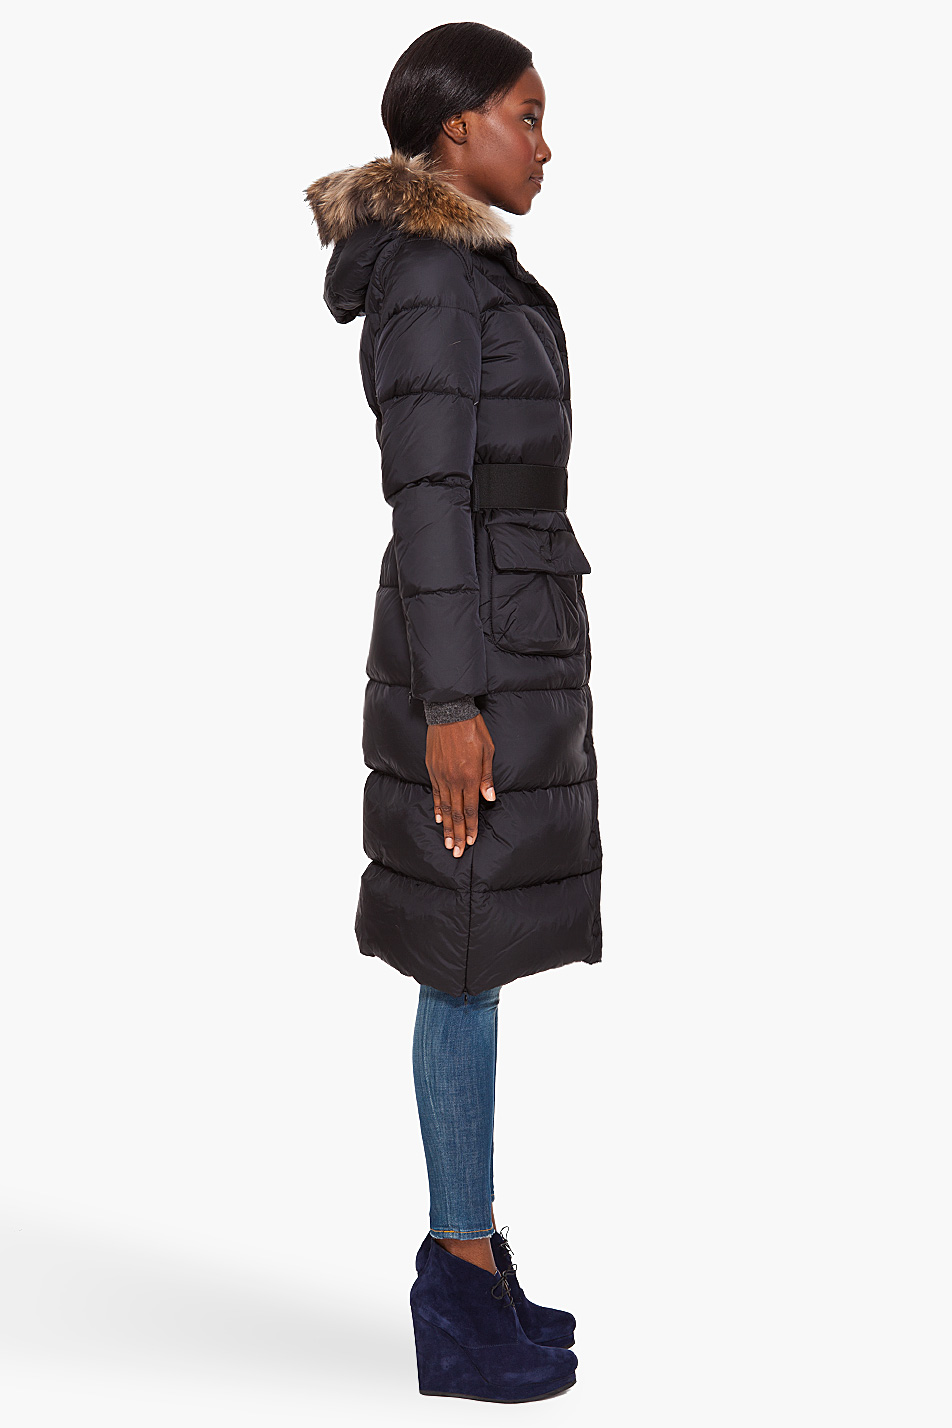 parajumpers extra long jacket